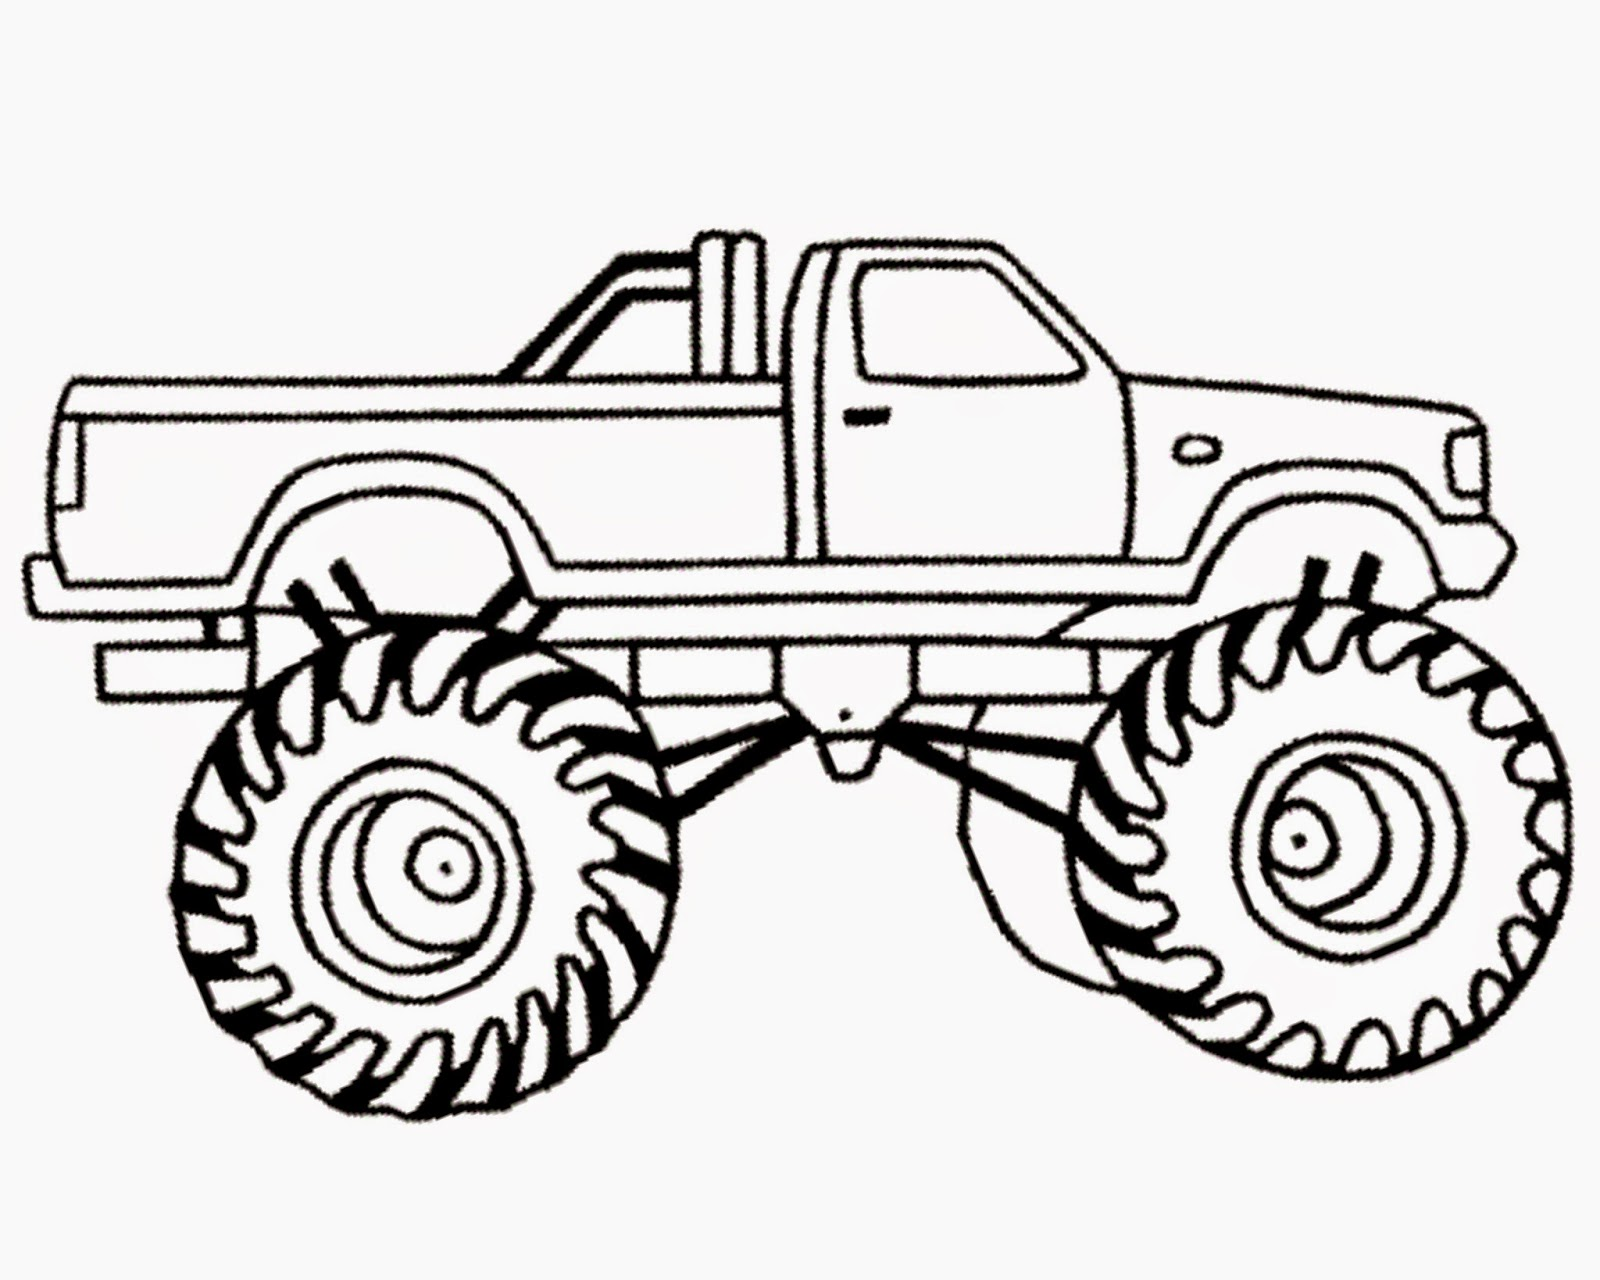 Mud truck coloring pages good chevy clipart clipground image royalty free download Mud Truck Clipart | Free download best Mud Truck Clipart on ... image royalty free download